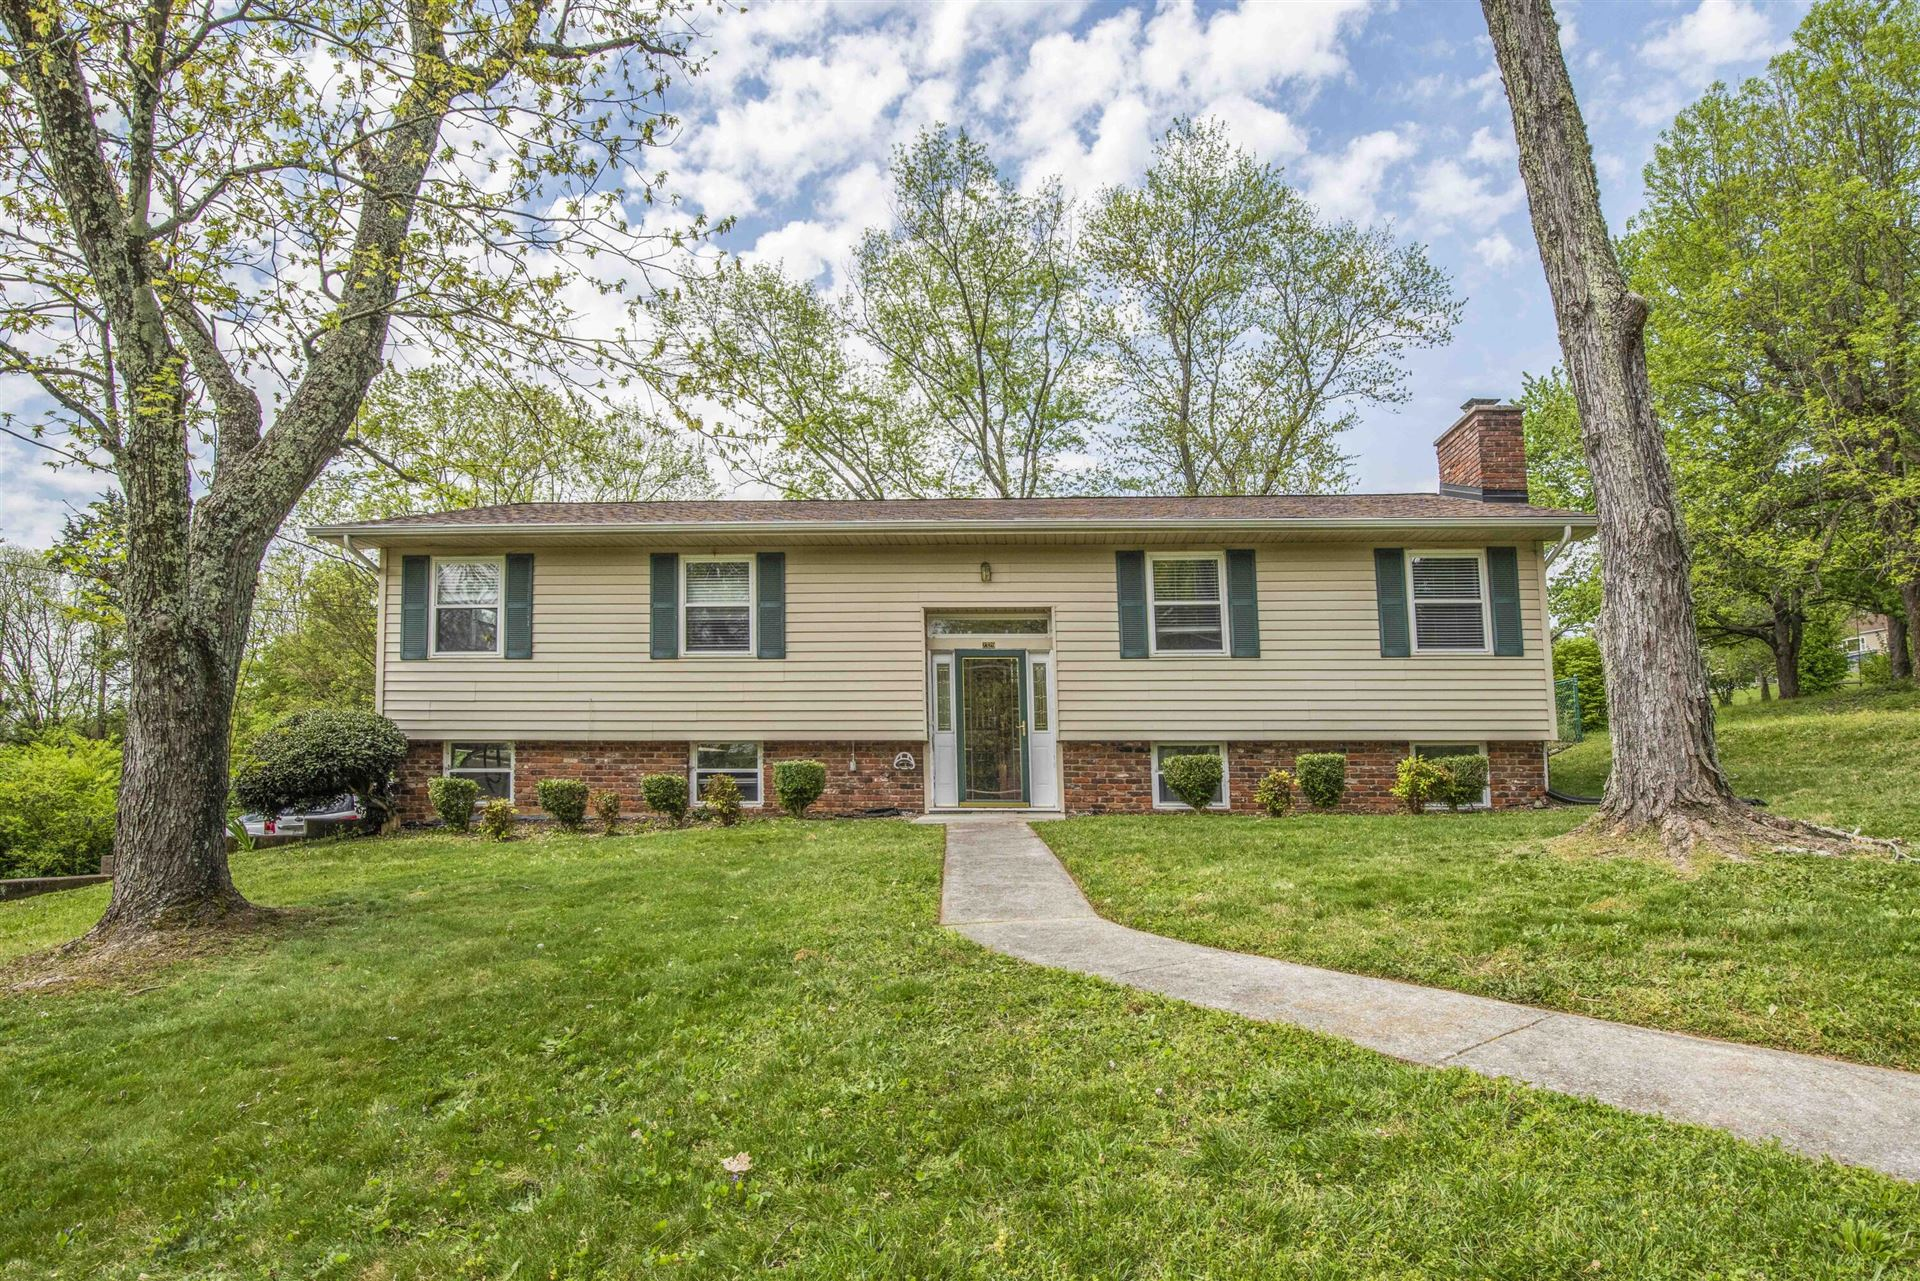 Photo of 2329 Alice Bell Rd, Knoxville, TN 37914 (MLS # 1149202)